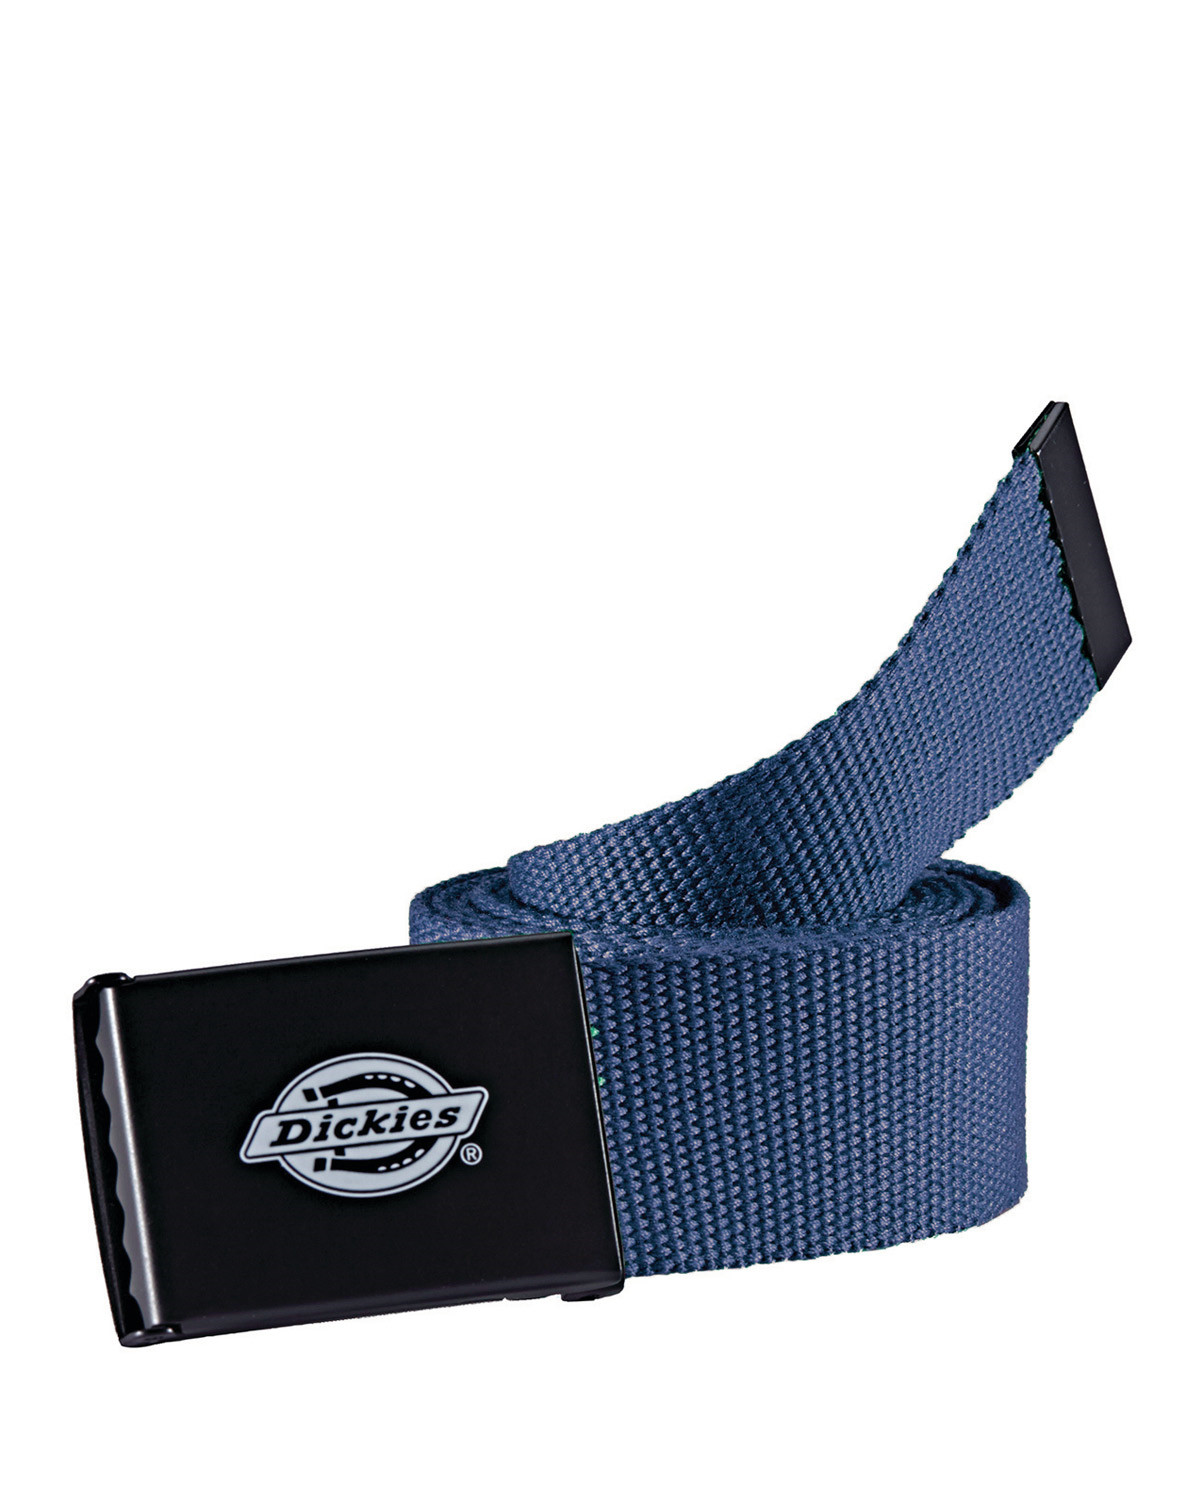 Image of   Dickies Orcutt Rollerbuckle Bælte (Mørk Navy, One Size)